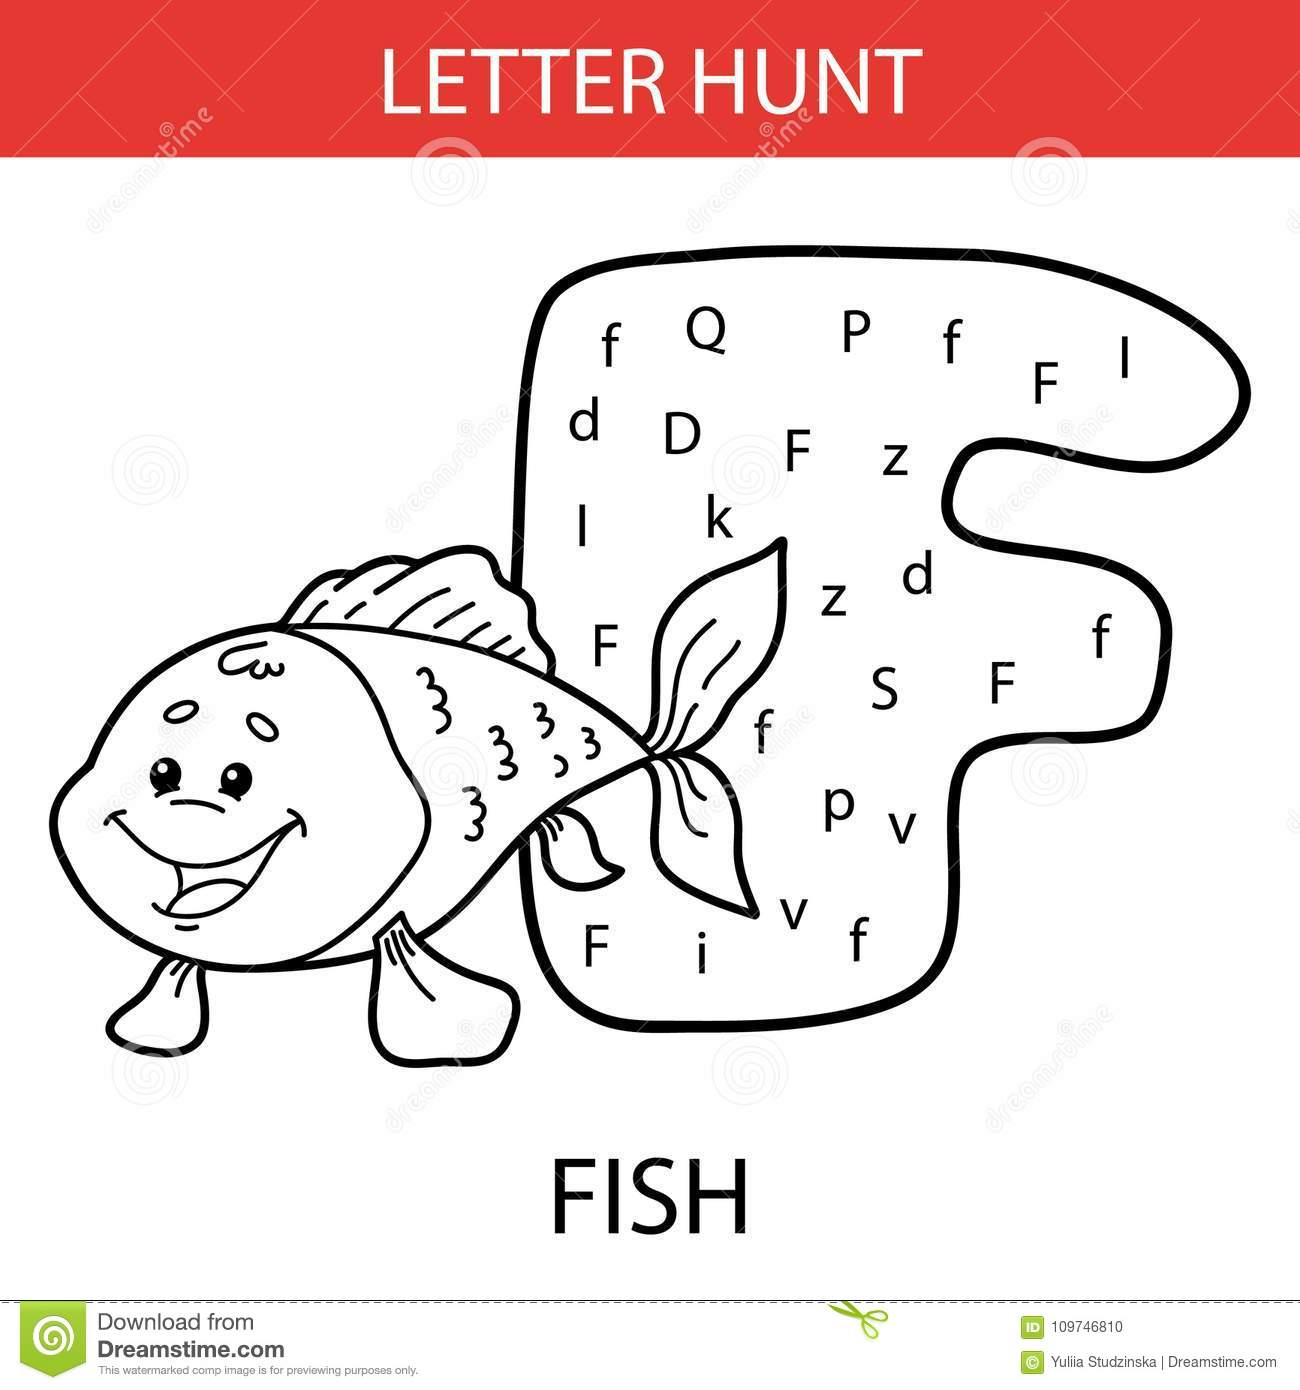 Animal Letter Hunt Fish Stock Vector Illustration Of